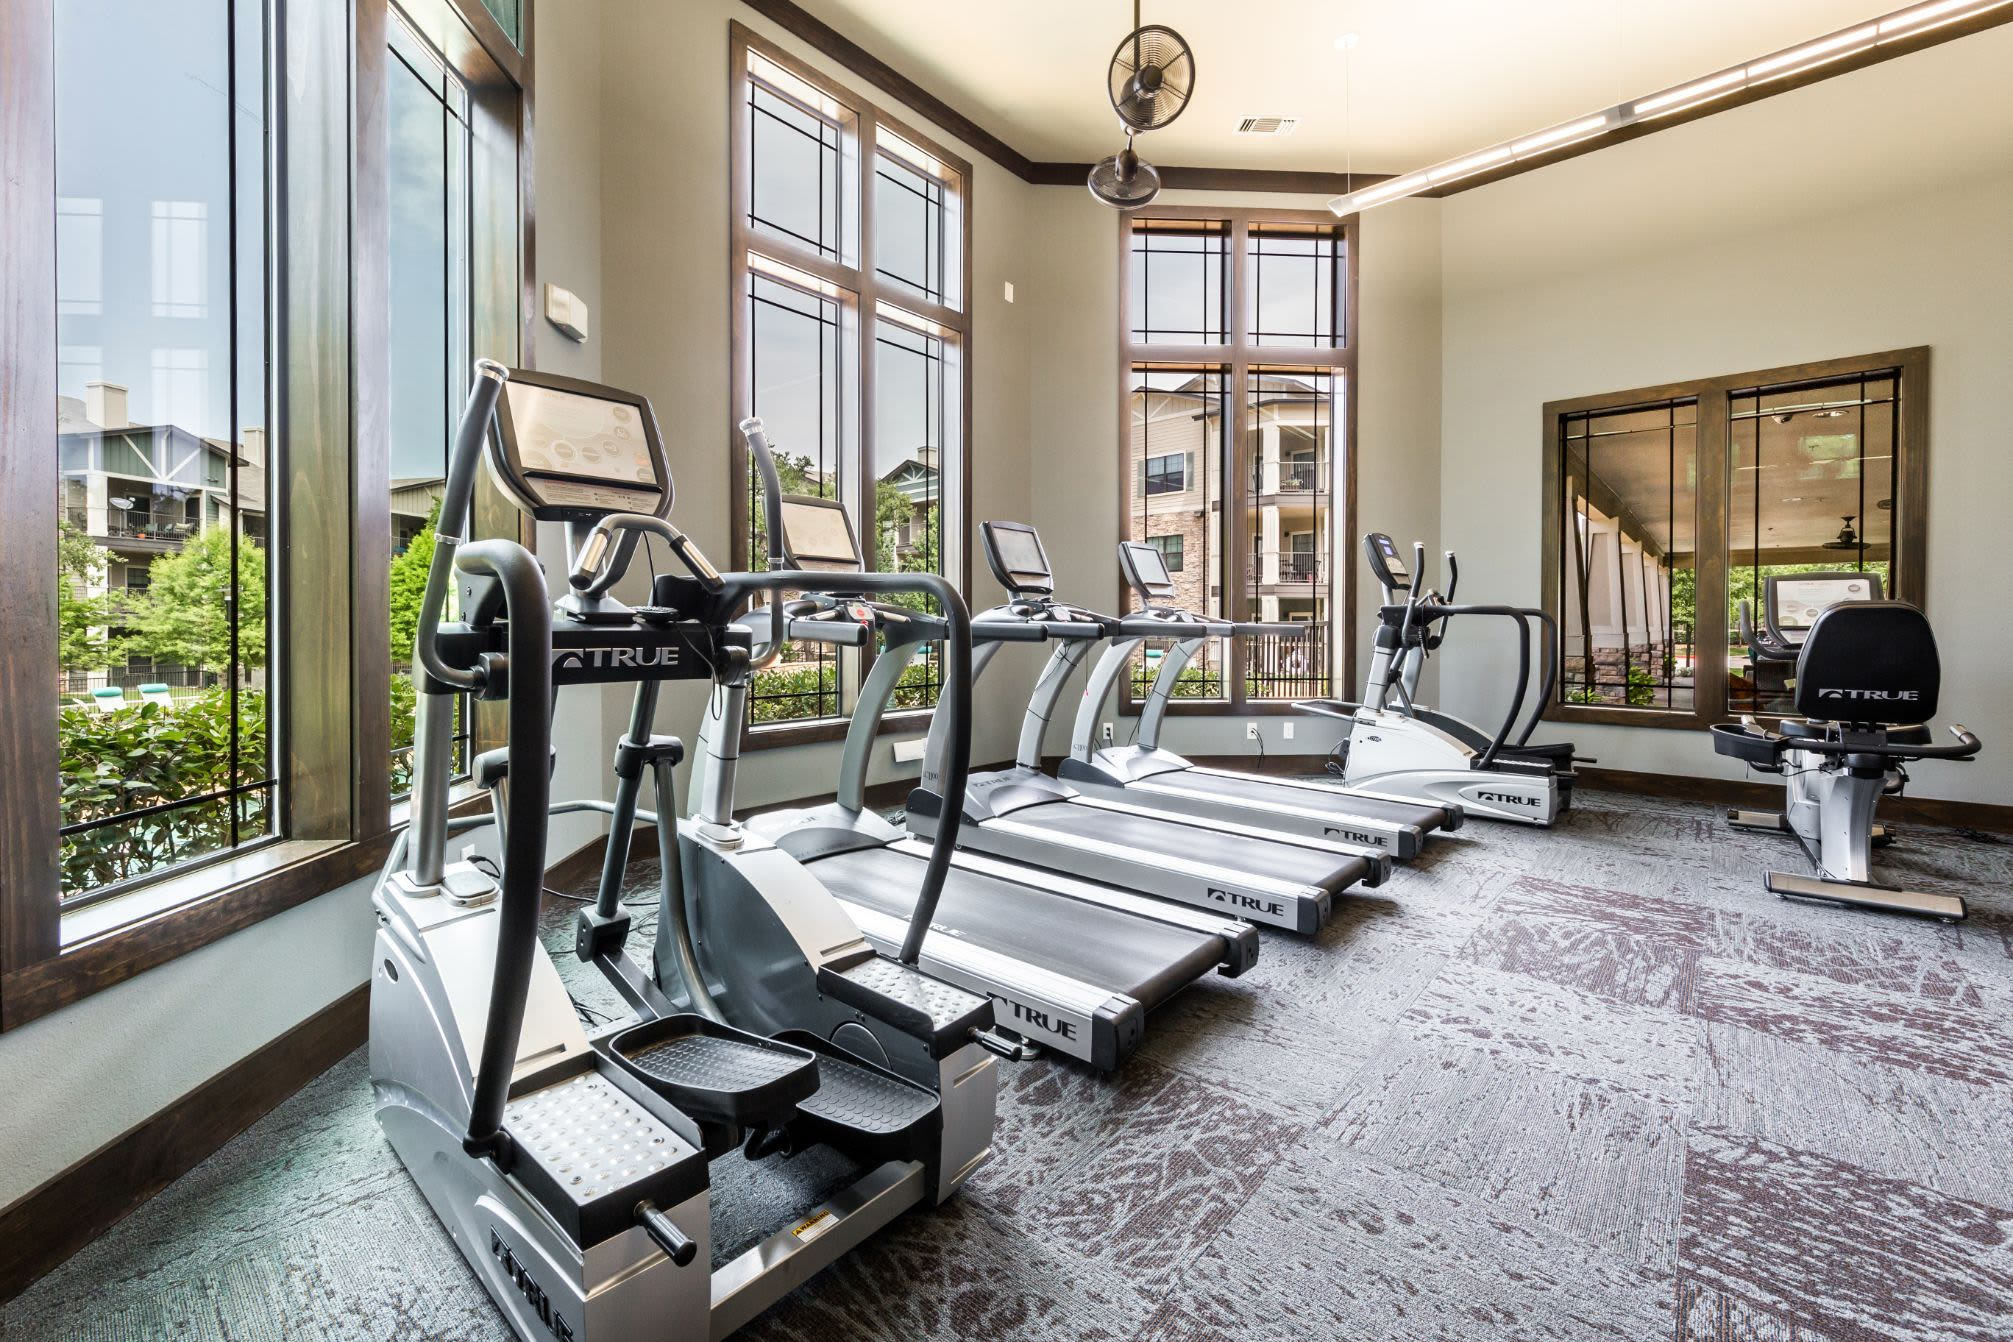 Treadmills in a bright fitness center at Marquis on Lakeline in Cedar Park, Texas